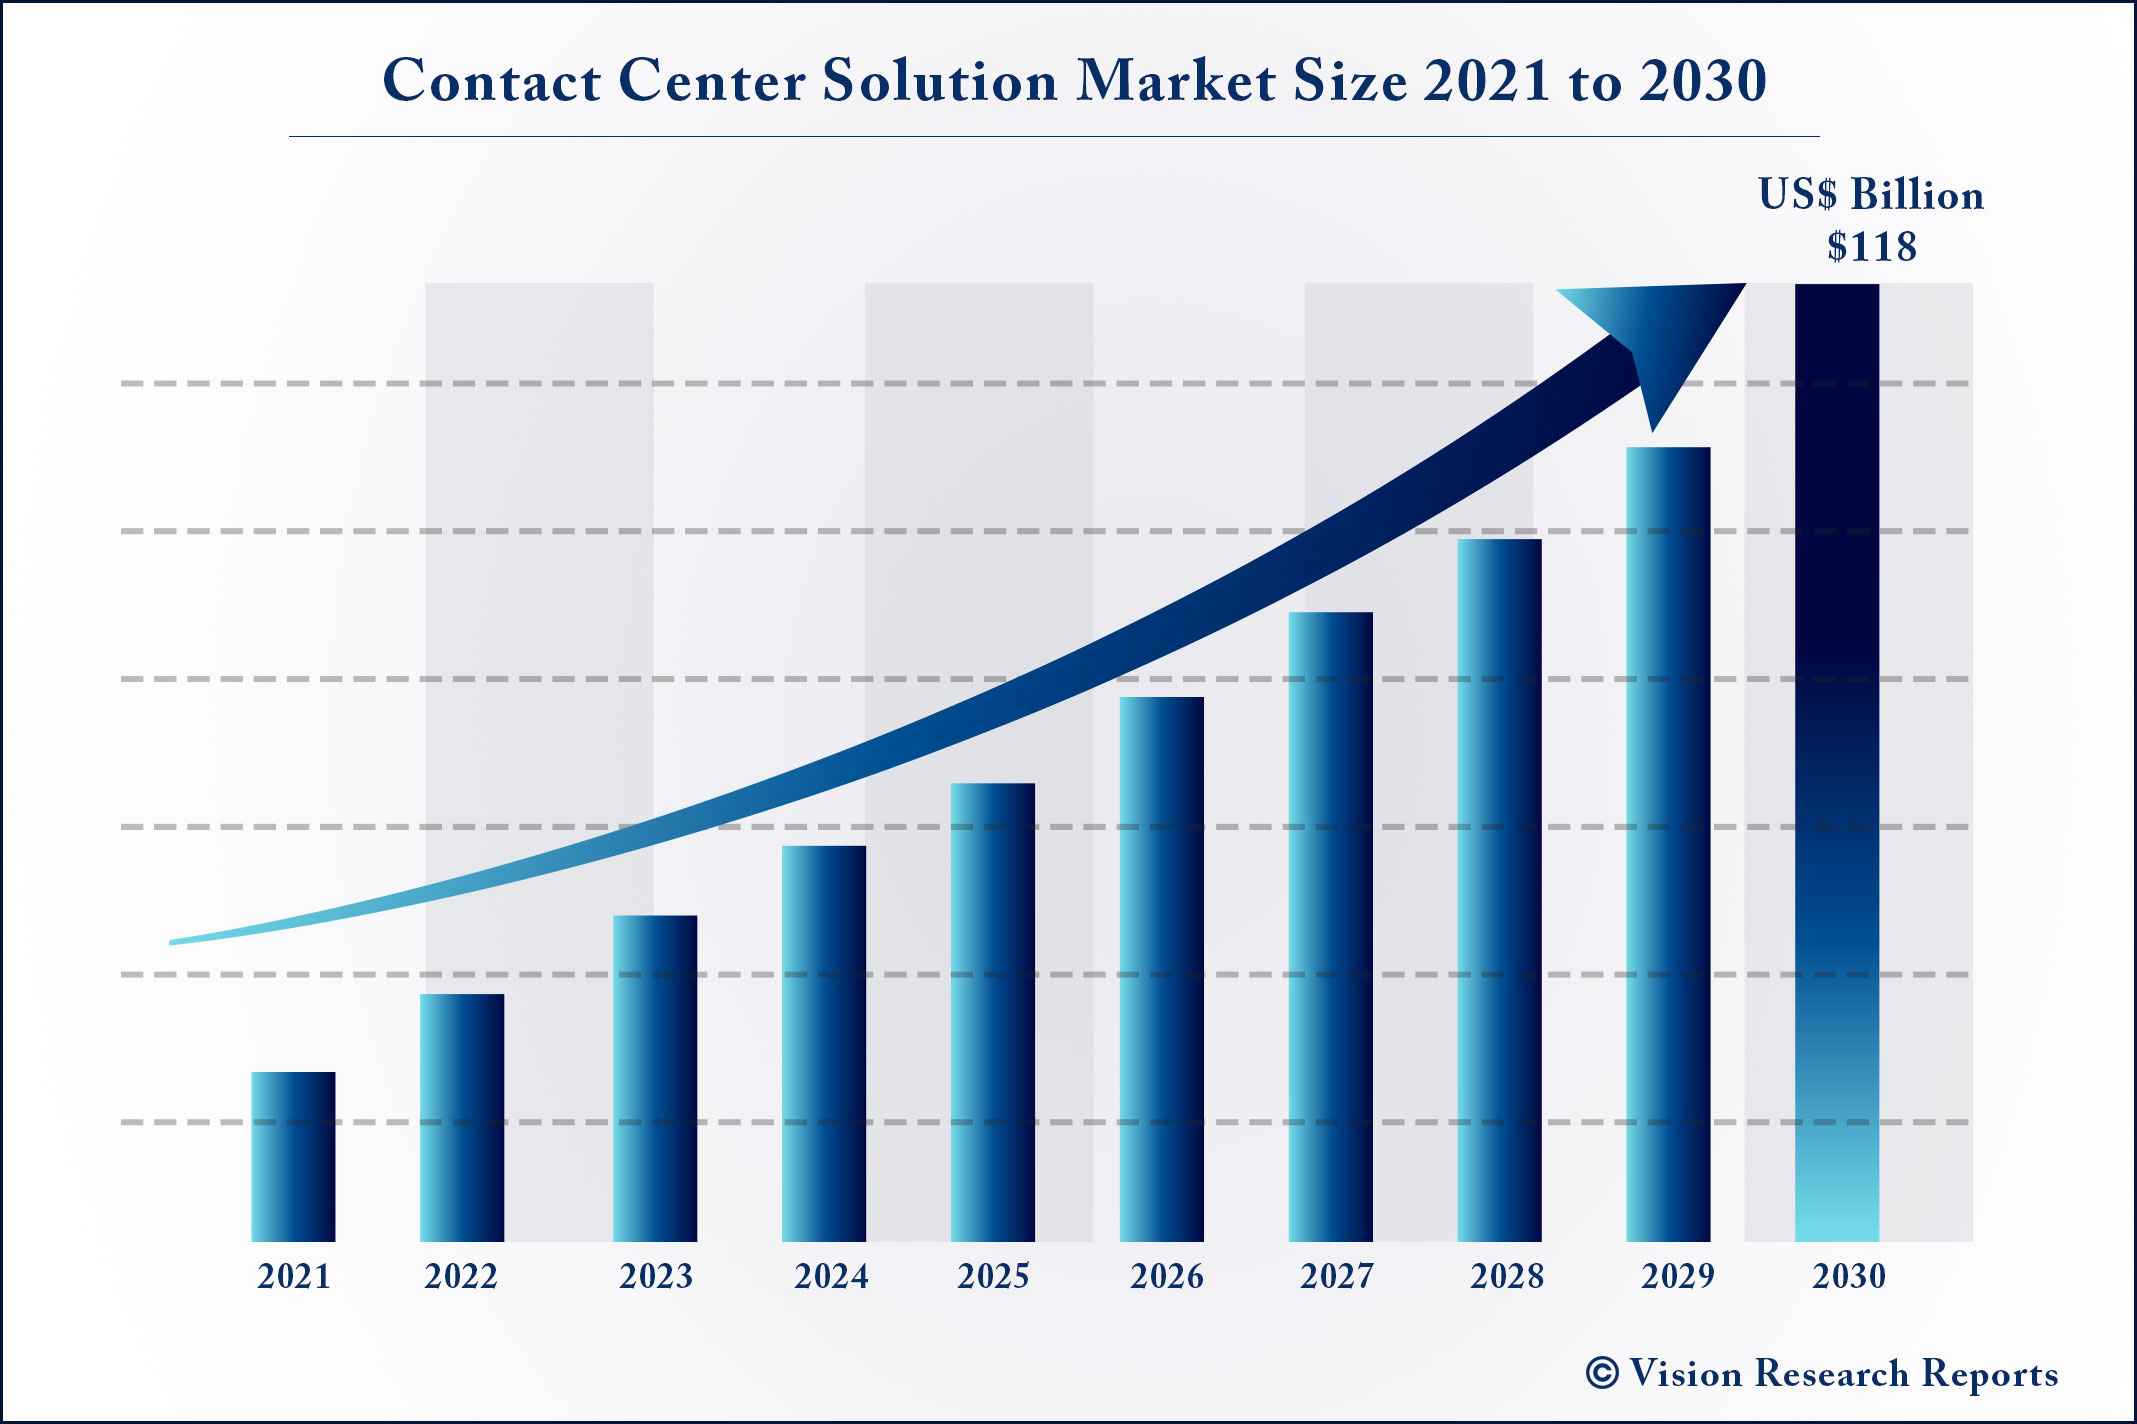 Contact Center Solution Market Size 2021 to 2030